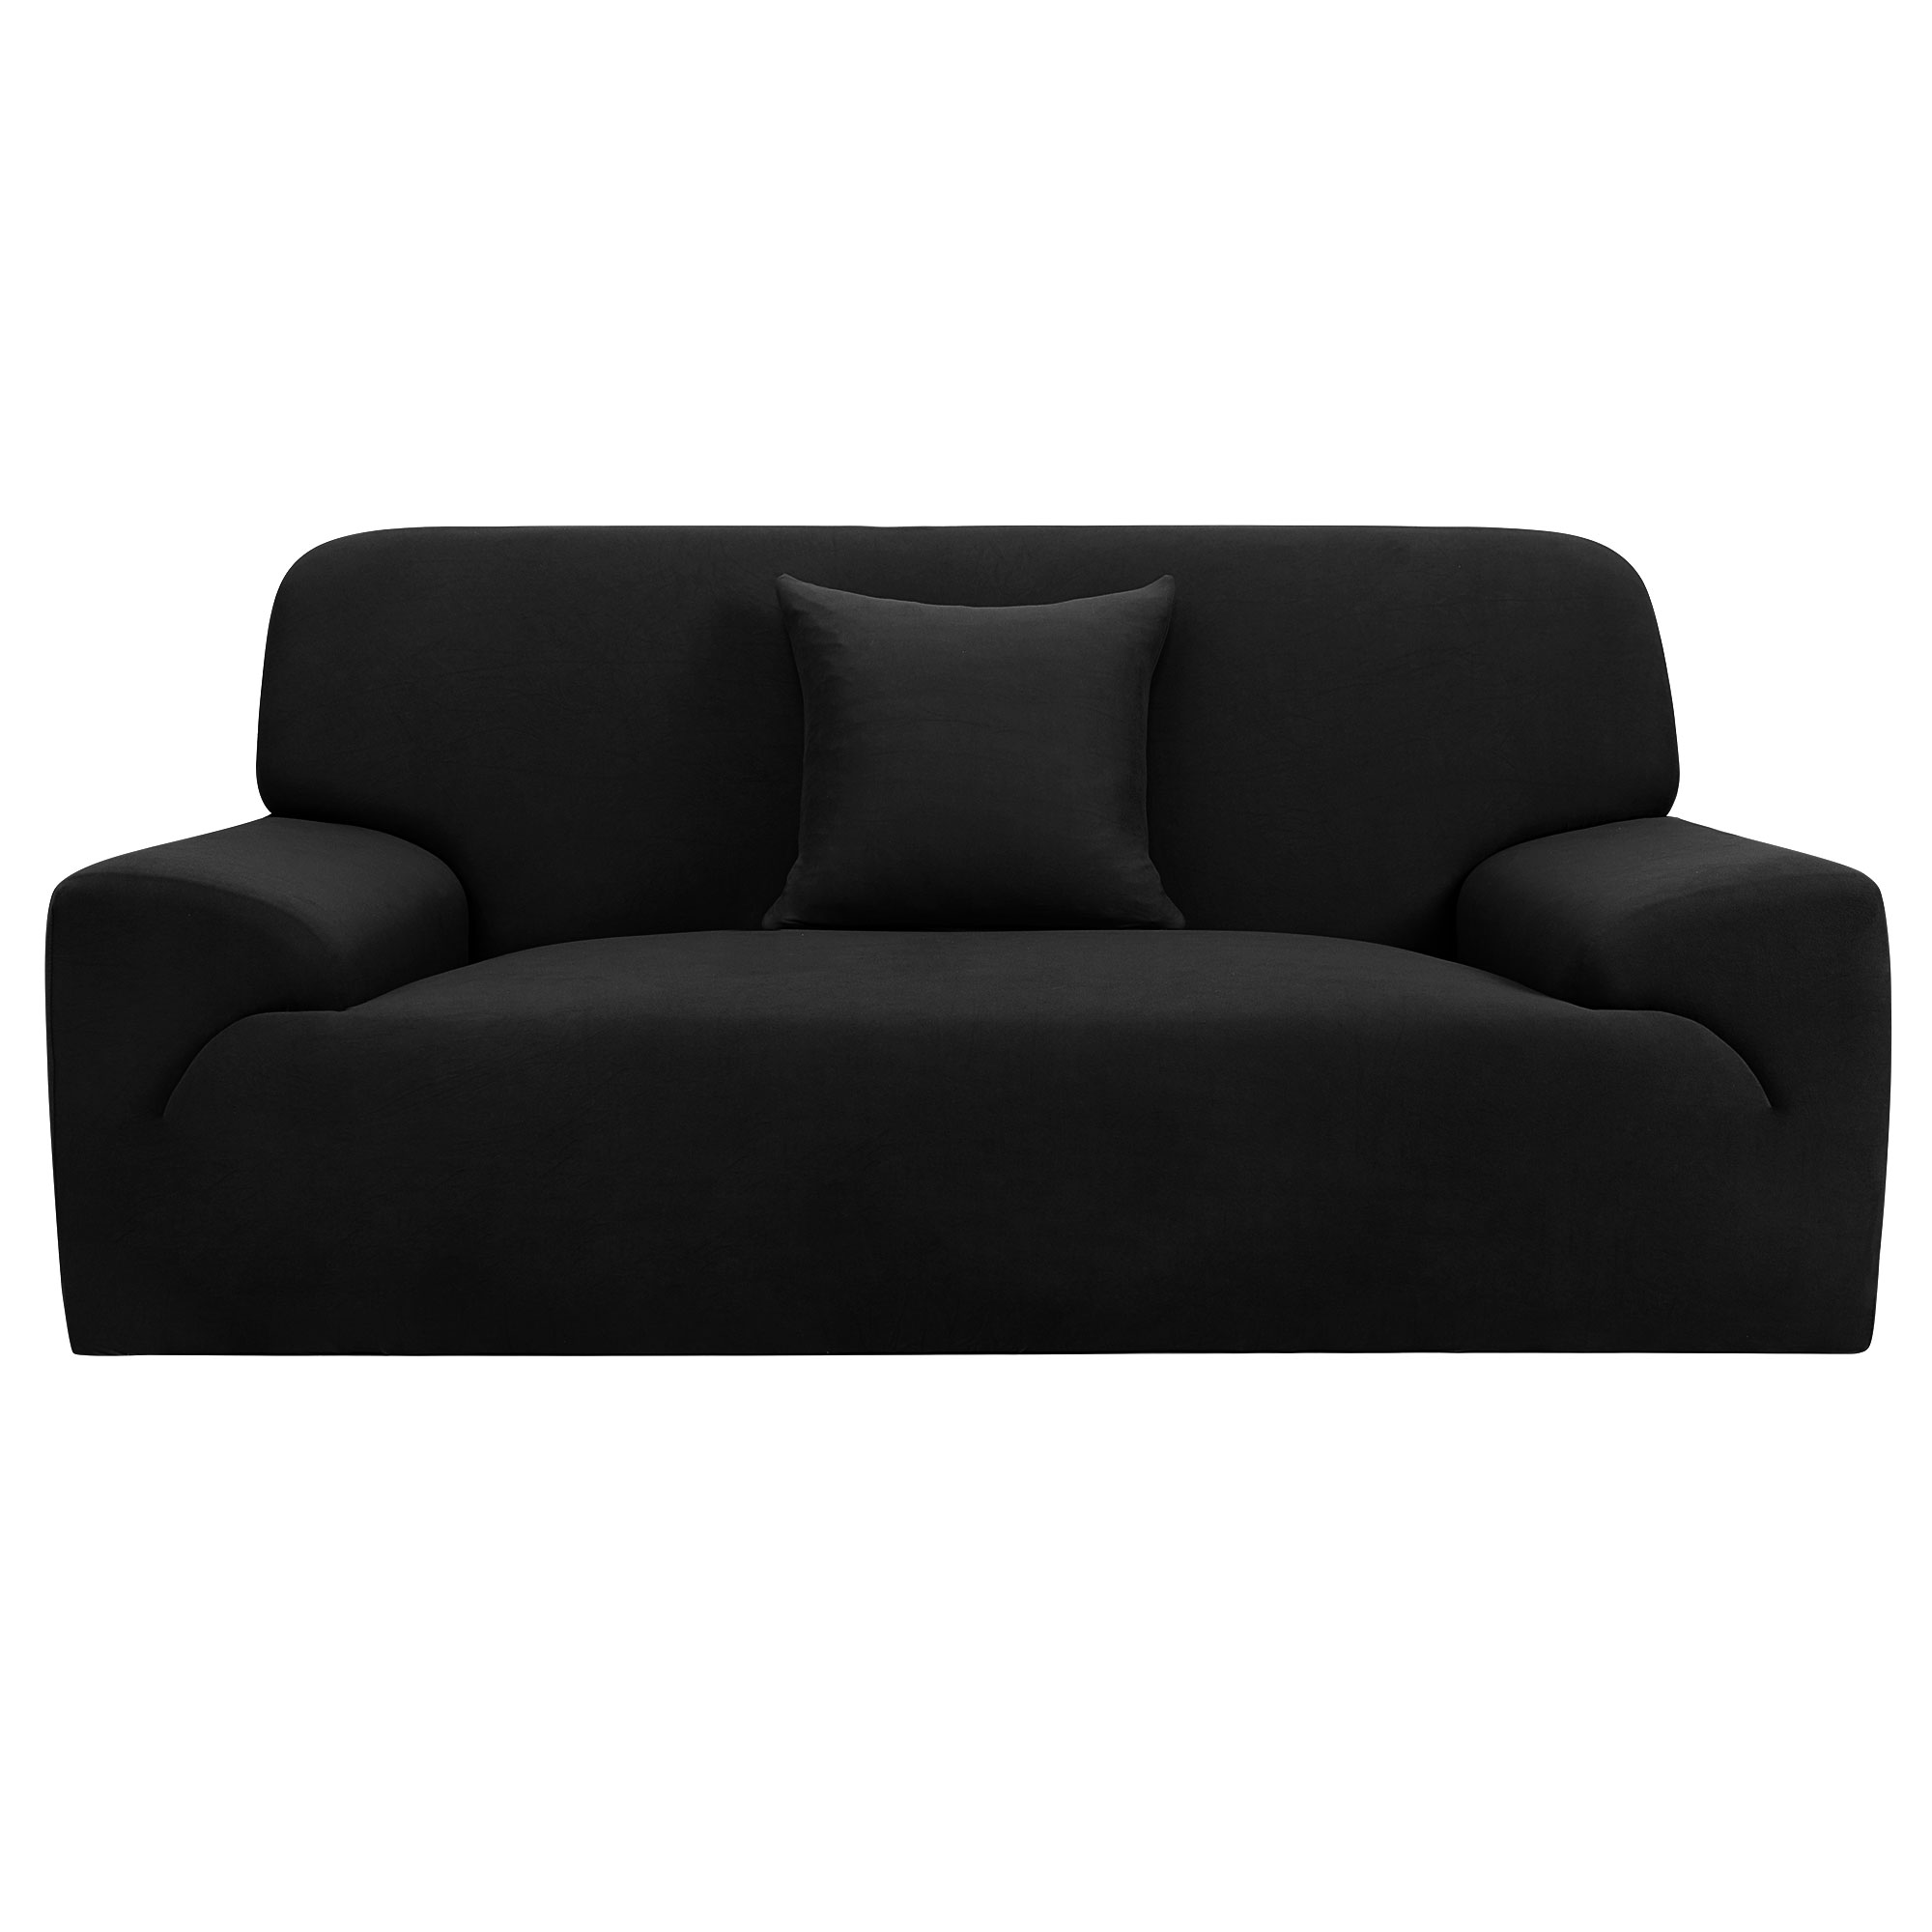 Furniture Sofa Couch Stretch Cover Slipcover Protector Black 74''-90''